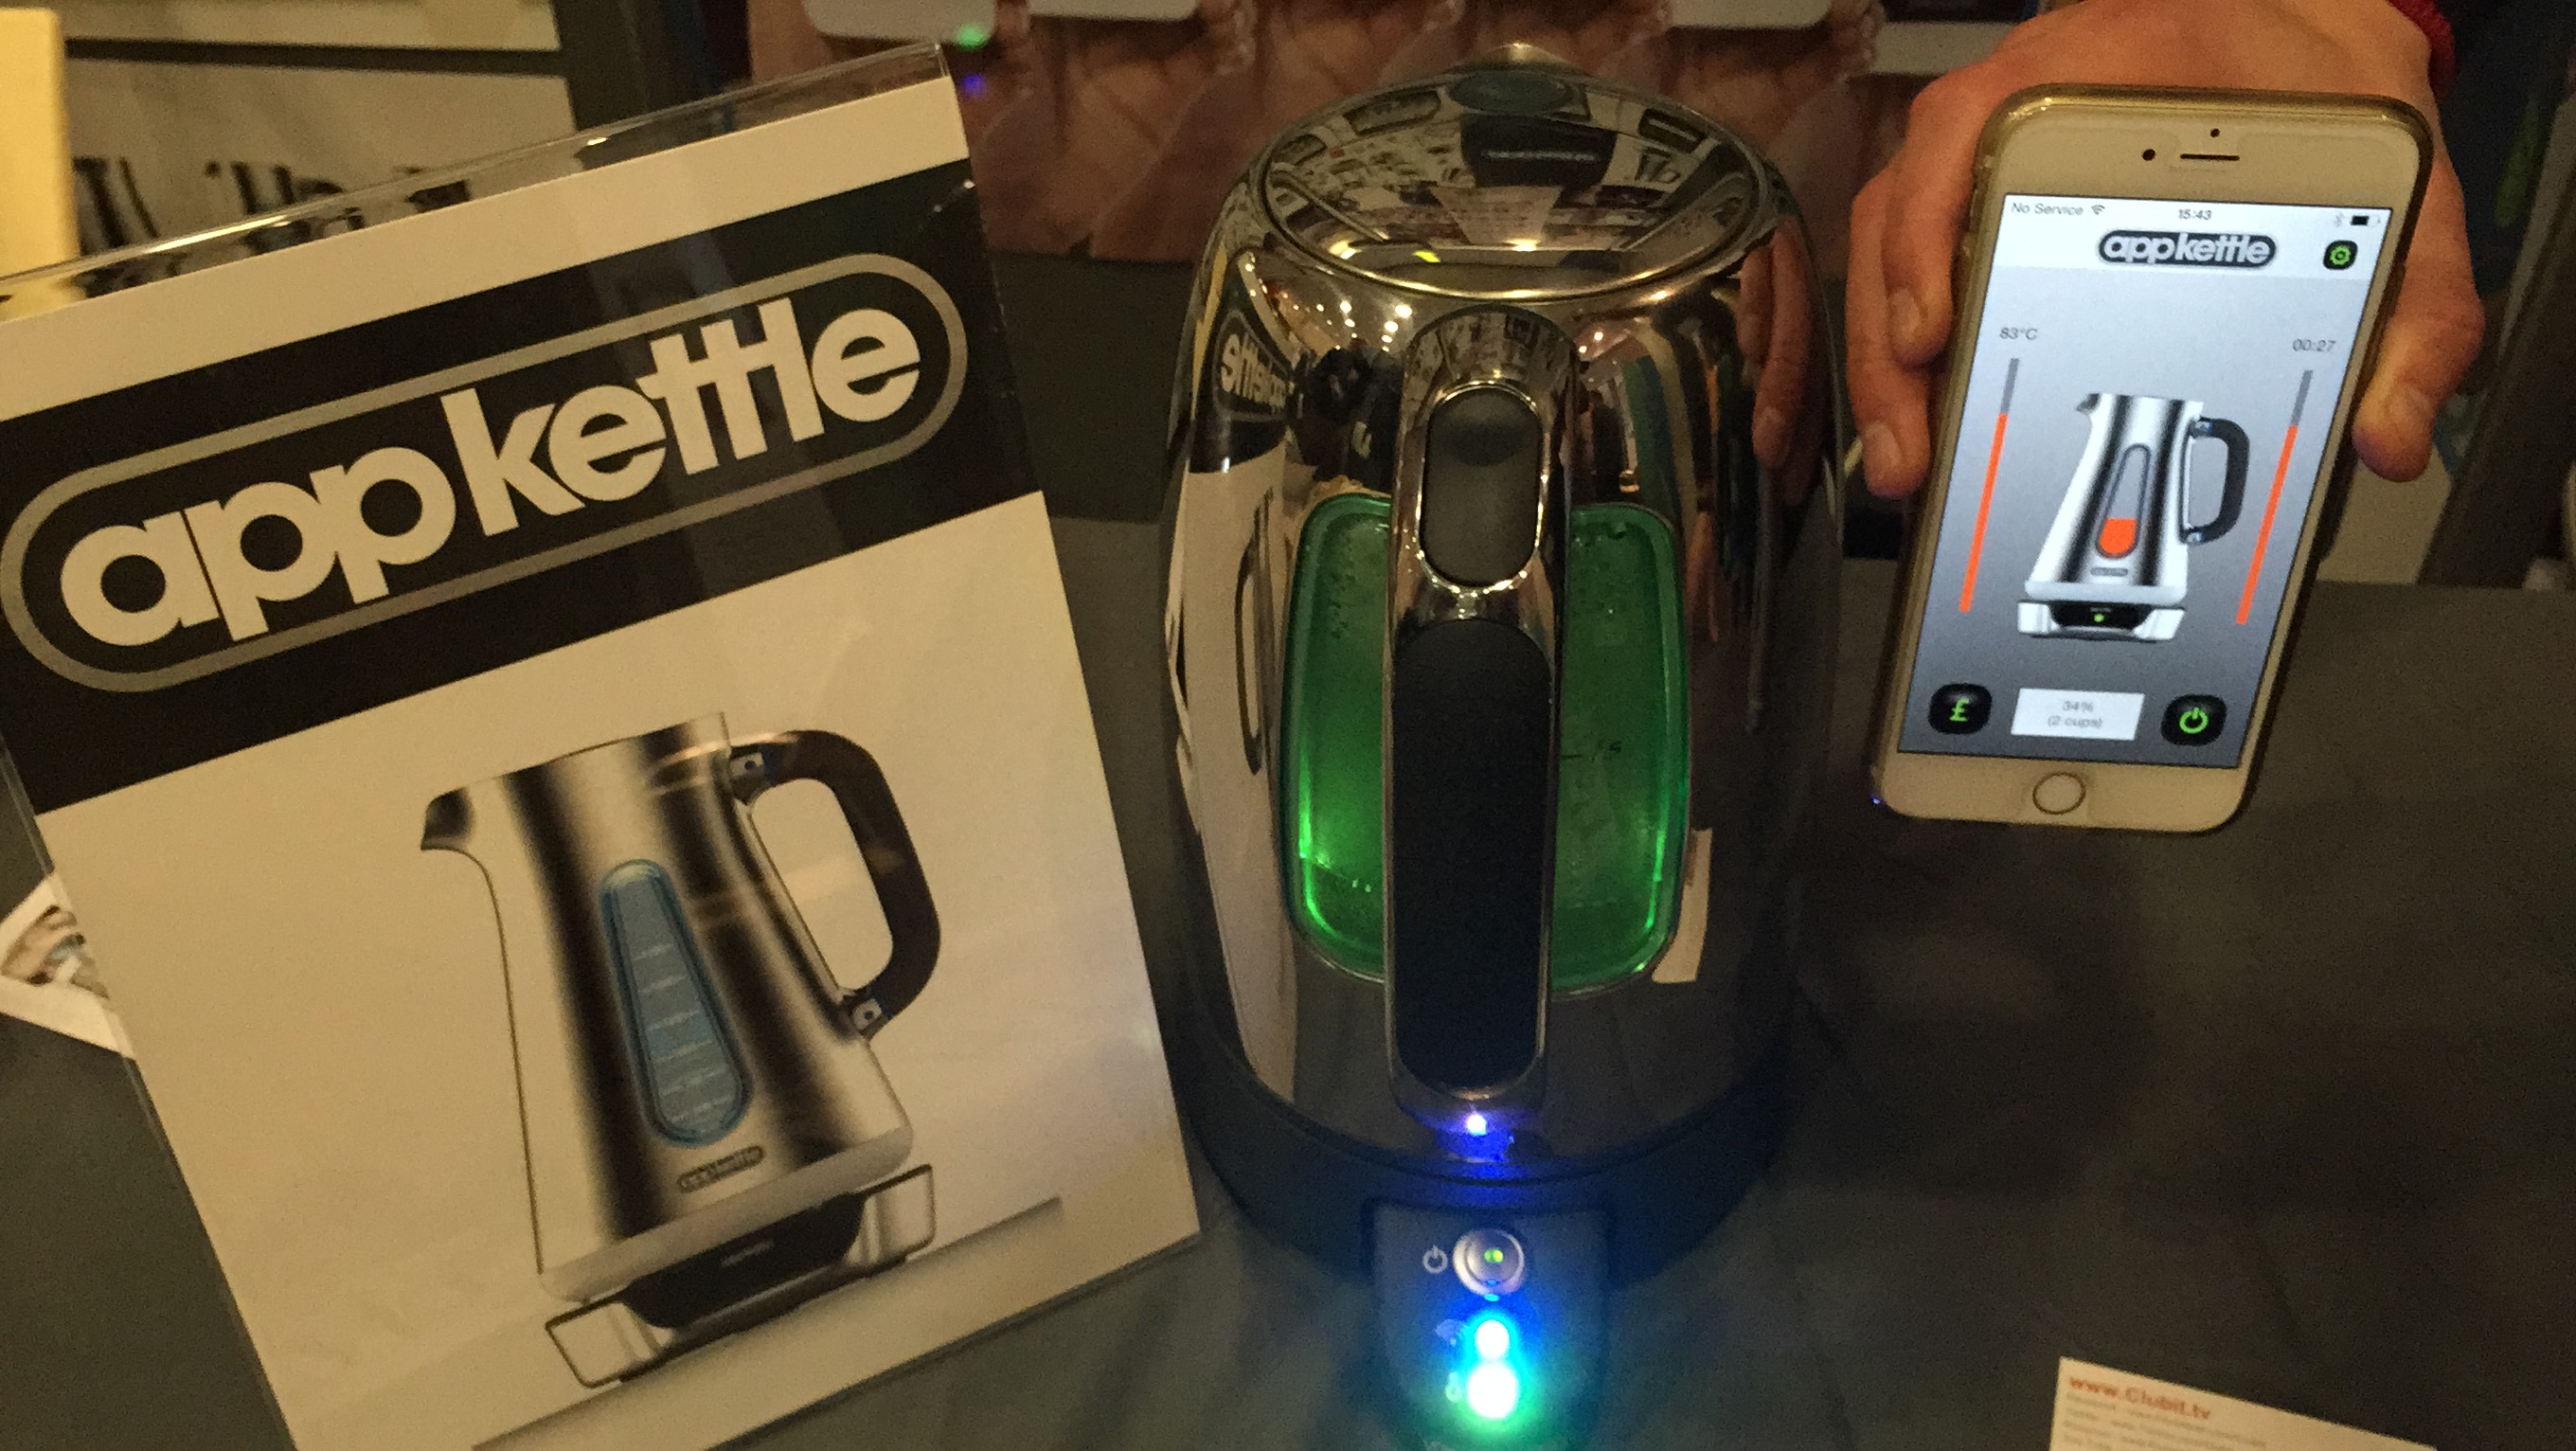 The AppKettle in Action